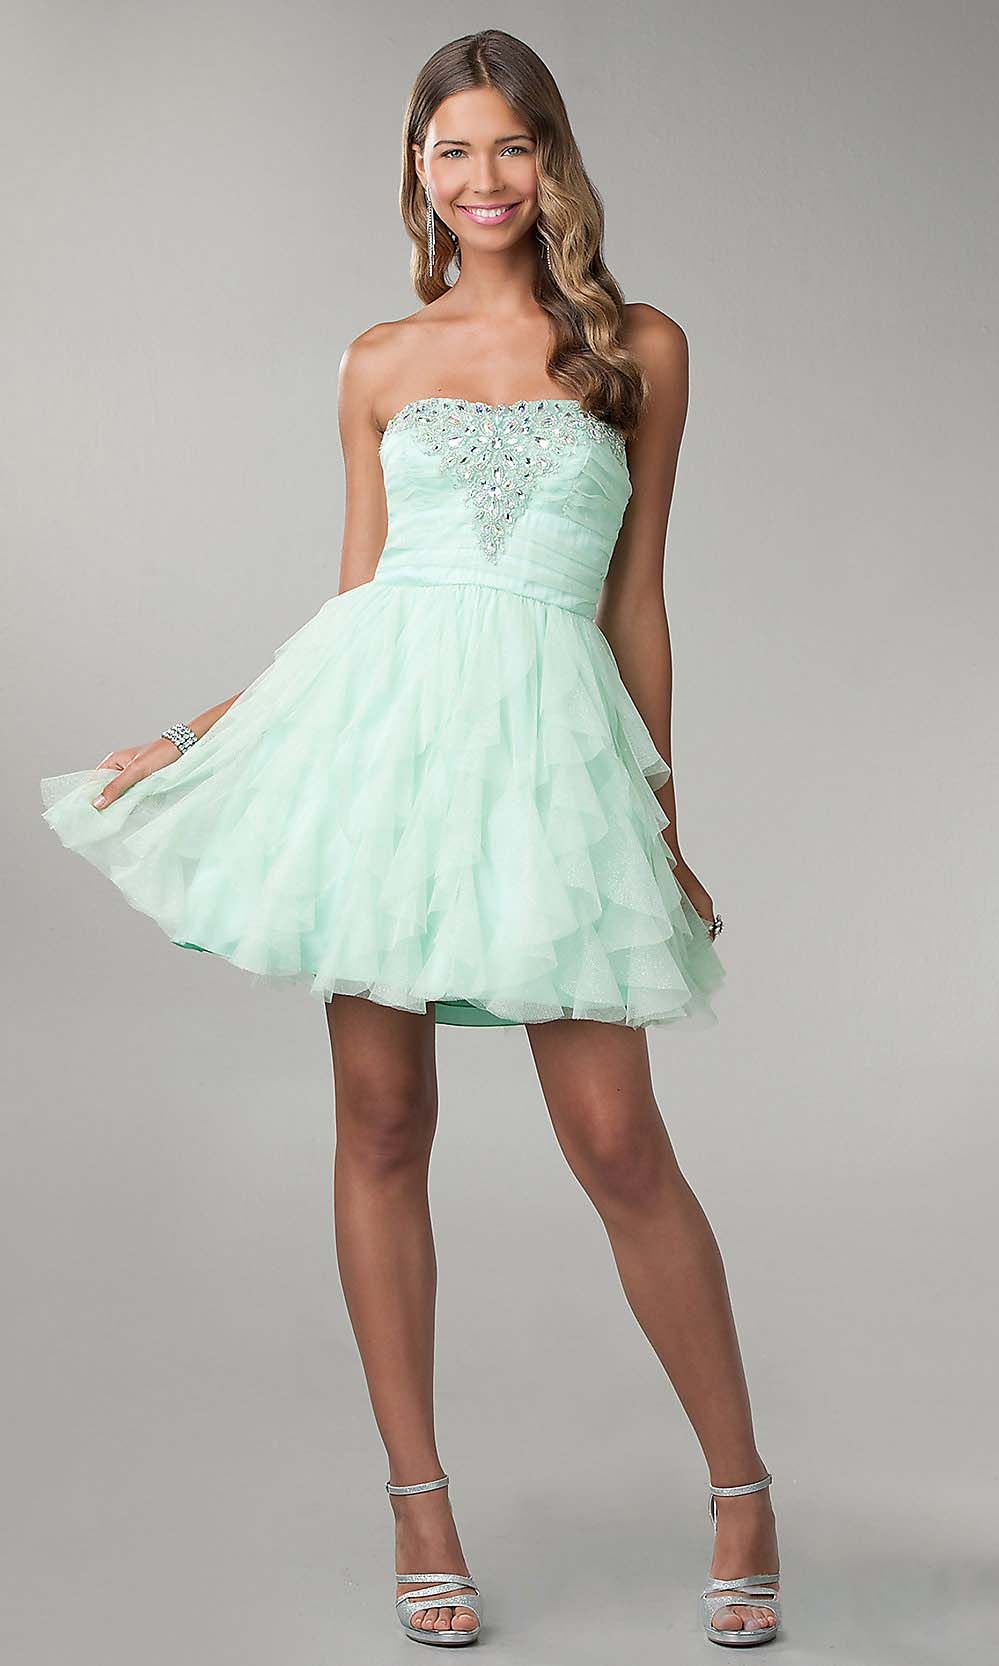 Cute Prom Dress Pretty Prom Dresses Mint Prom Dress Short